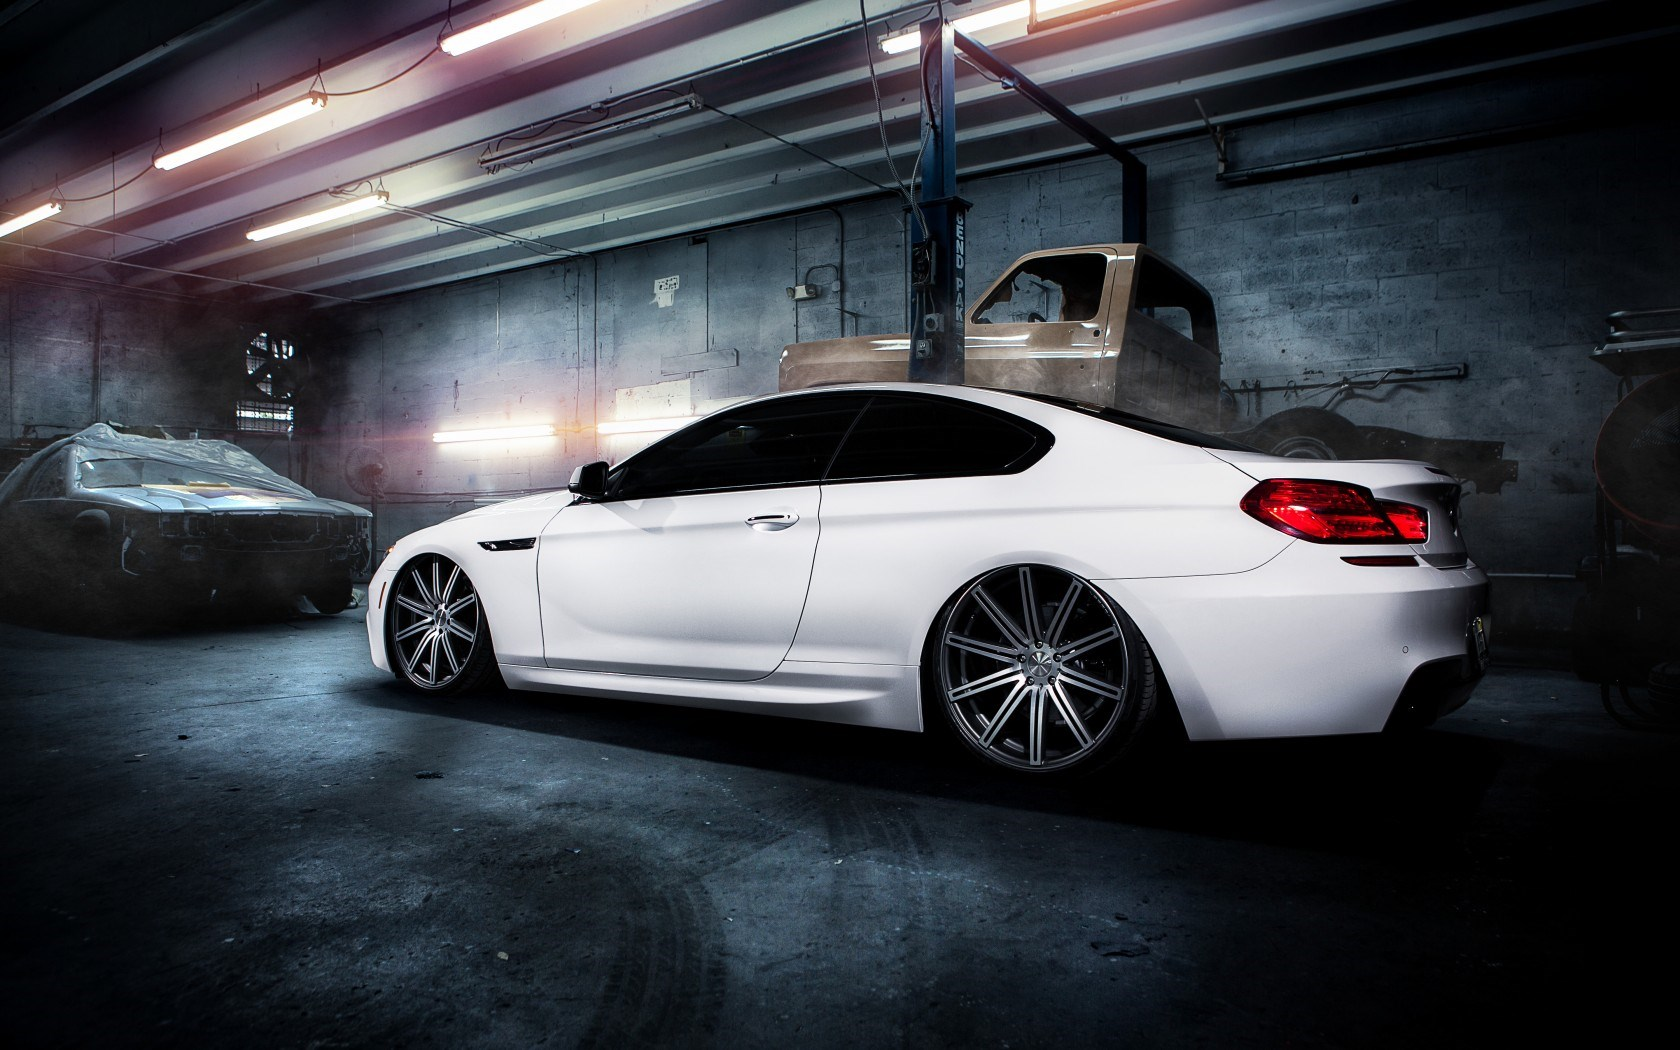 BMW M6 White Garage Car